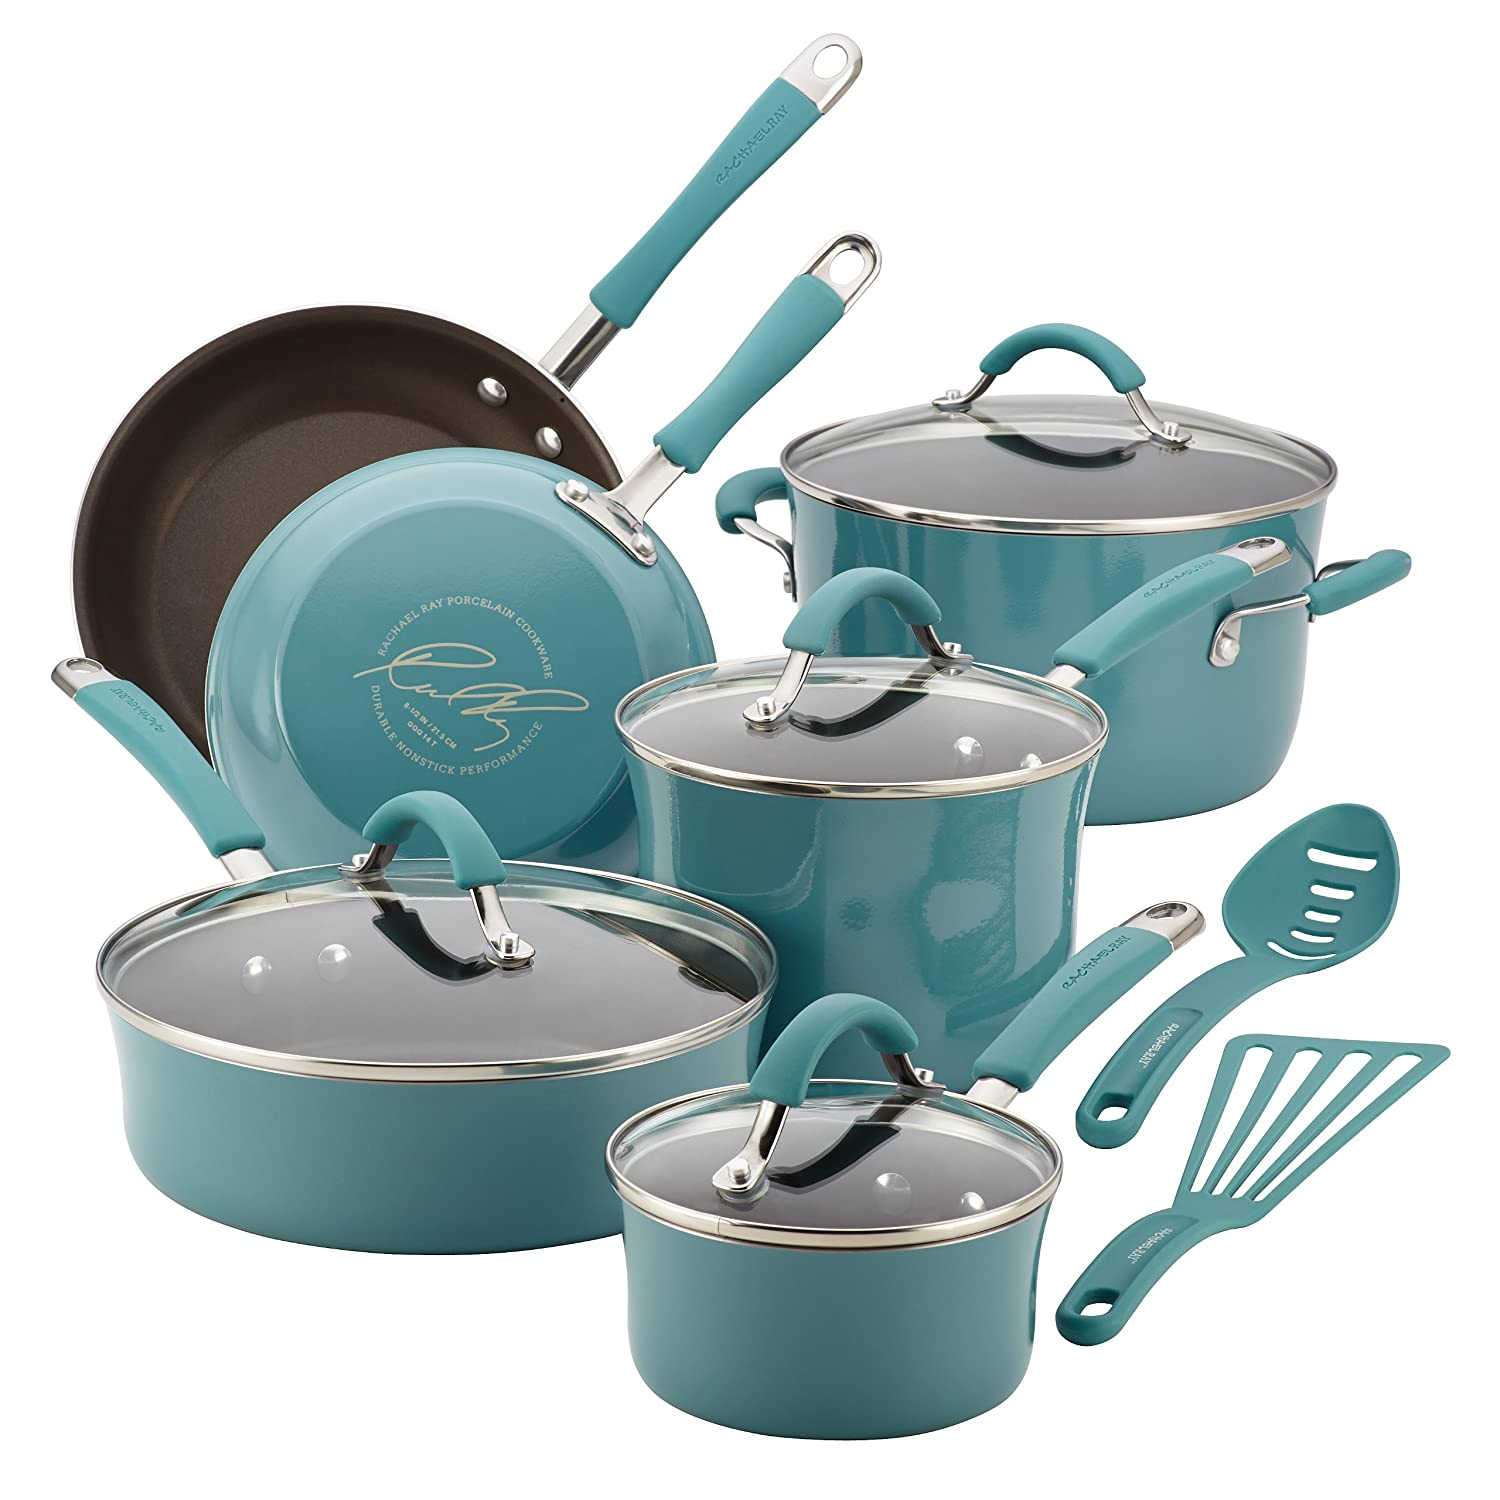 Rachael Ray Cucina Hard Porcelain Enamel Nonstick Cookware Set, 12-Piece, Agave Blue Via Amazon